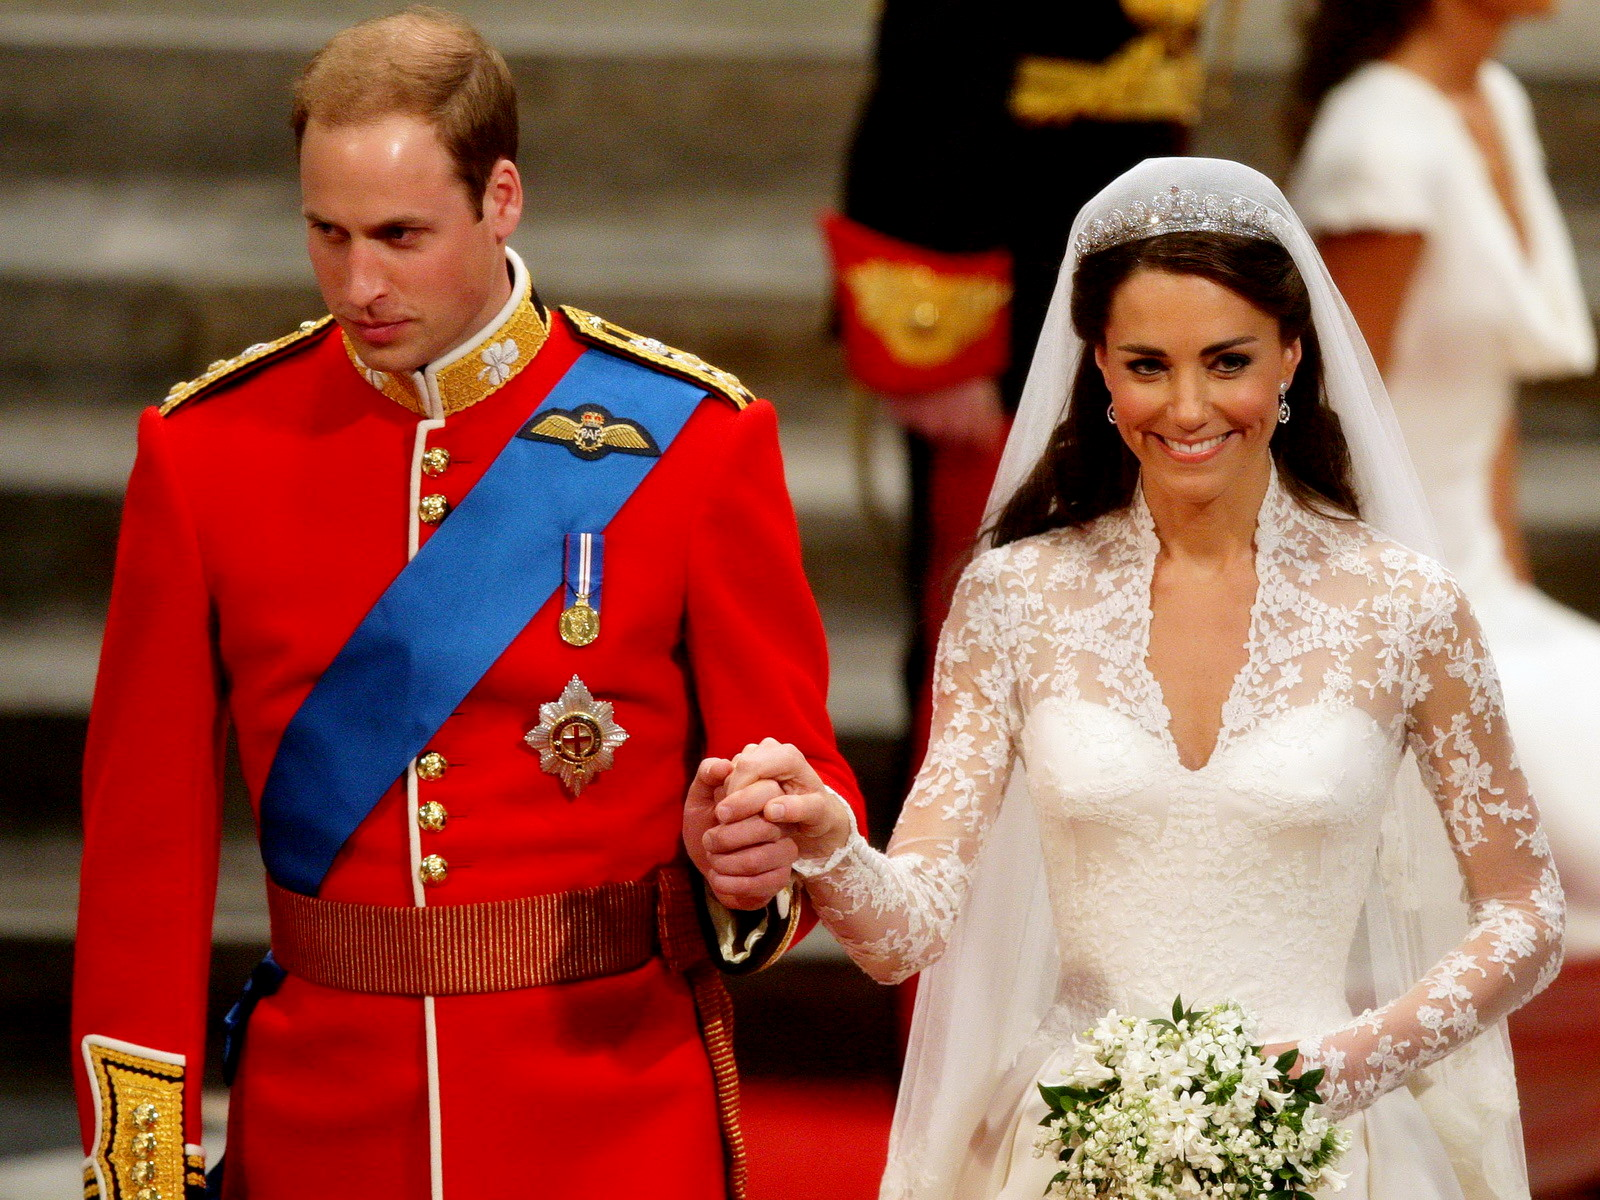 https://i2.wp.com/images6.fanpop.com/image/photos/33100000/Wills-Kate-prince-william-and-kate-middleton-33166687-1600-1200.jpg